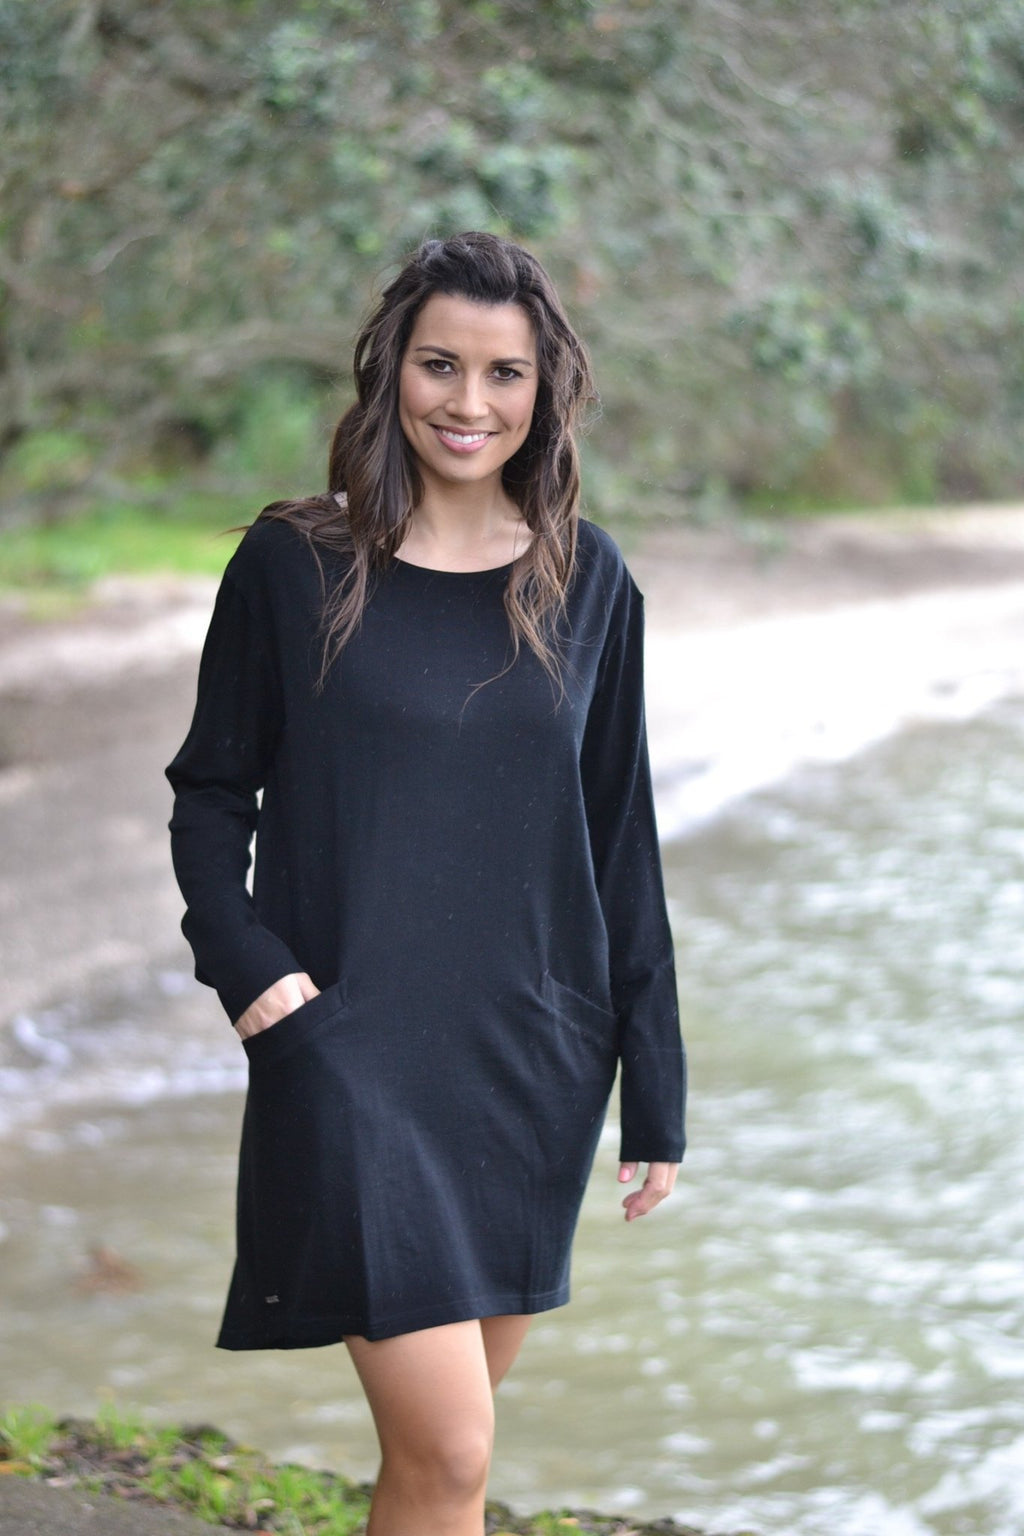 RELAXED TUNIC DRESS - EBAS48TD shown in Black - Ebony Boutique NZ